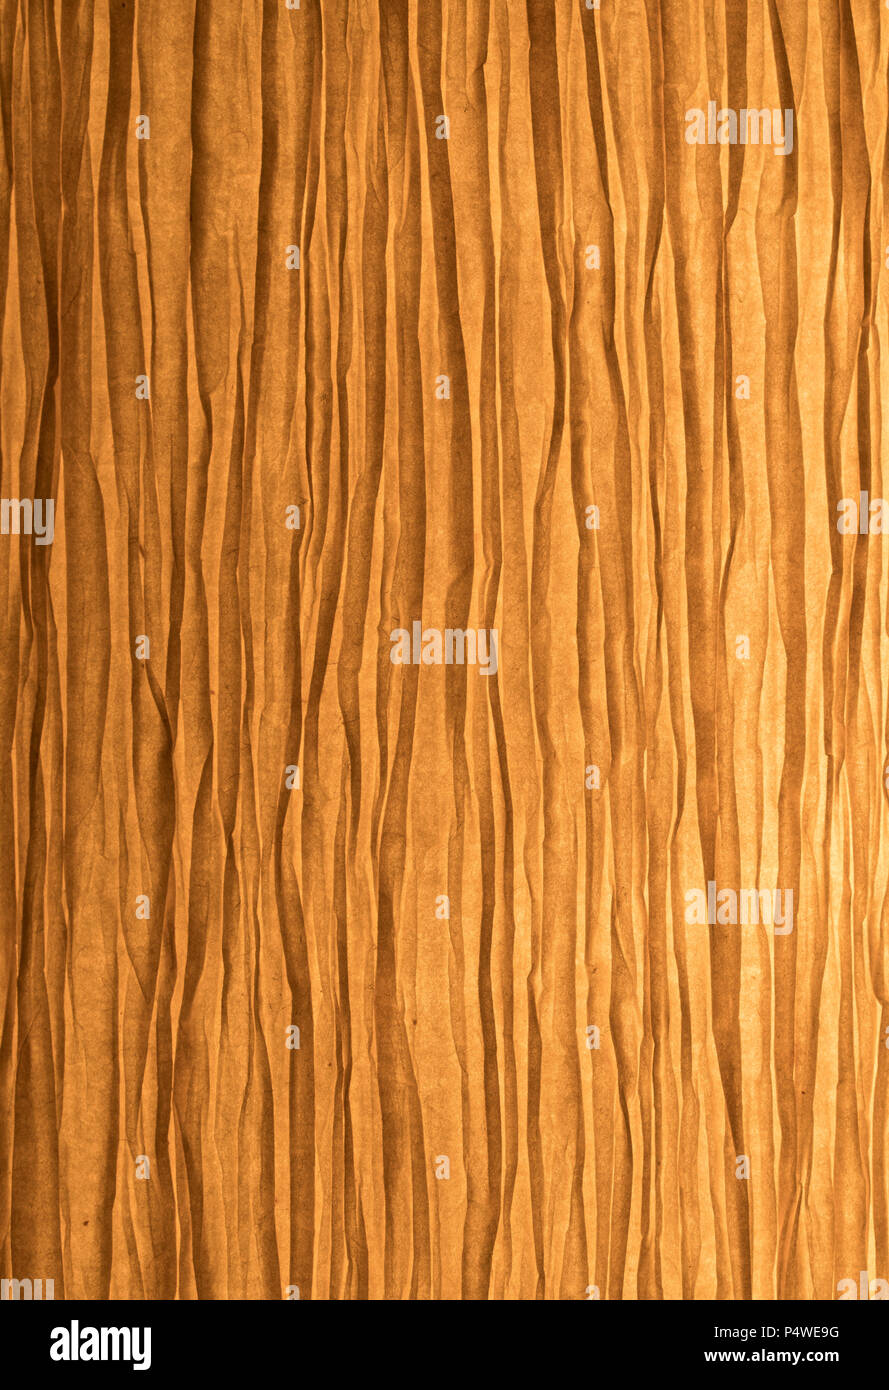 Textured Material with shadow and light - Stock Image